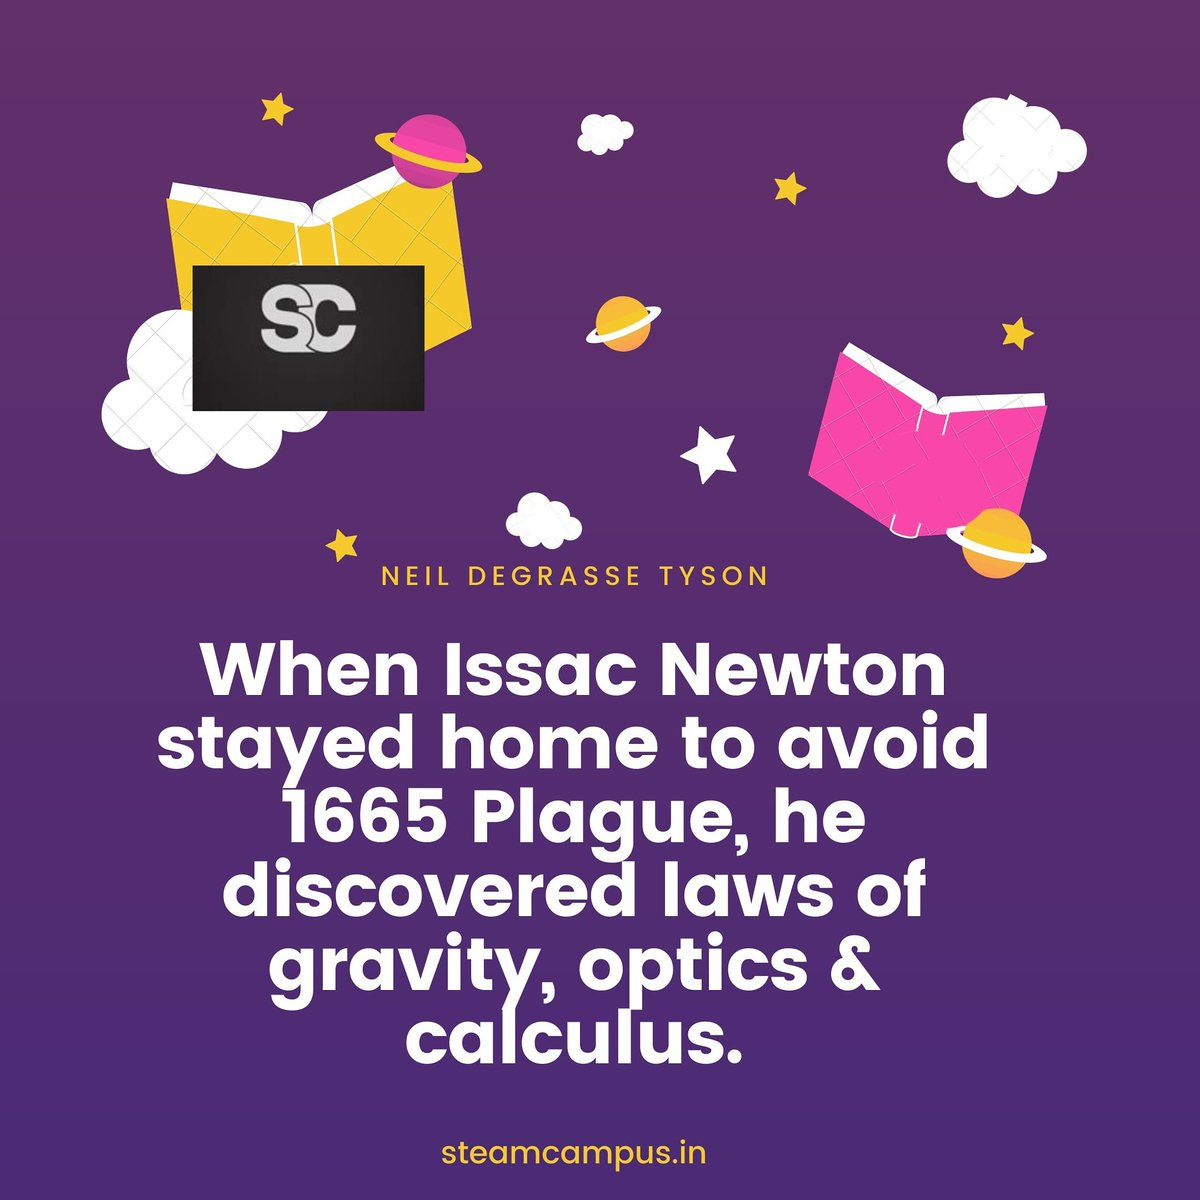 When Issac Newton stayed home to avoid 1665 Plague, he discovered laws of gravity, optics & calculus. http://Steamcampus.in  #newton #issacnewton #optics #lawsofgravity #calculus #discovery #physicslover #physicsquotes #sciencequotes #stayhome #smartwork #mathsloverpic.twitter.com/5Ipz2wopNG